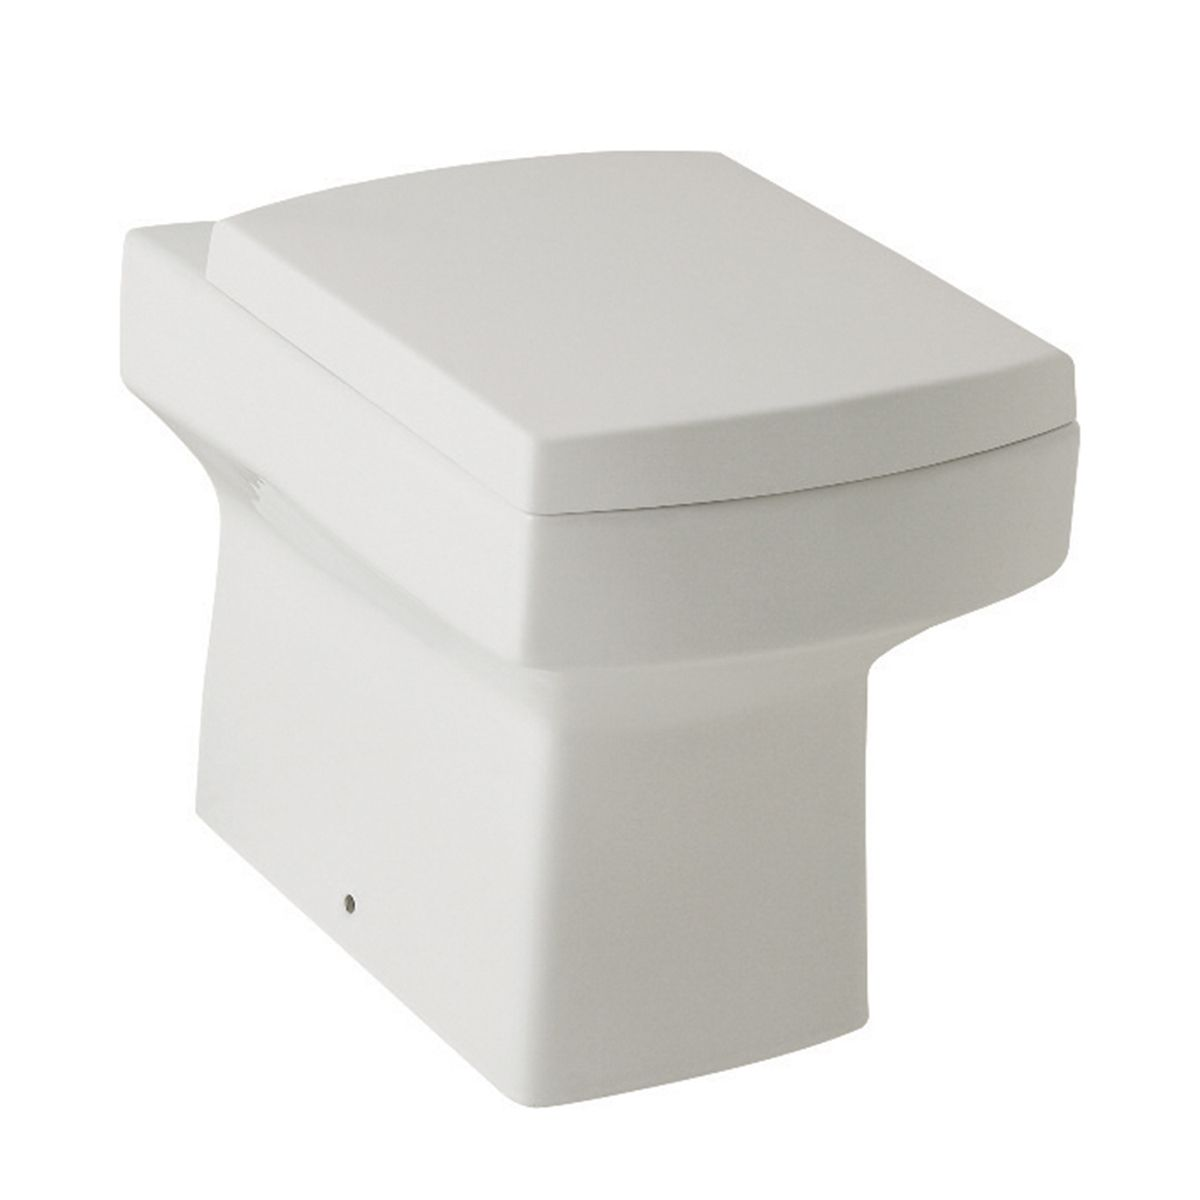 Kartell K-VIT Embrace Back to Wall Toilet with Soft Close Seat